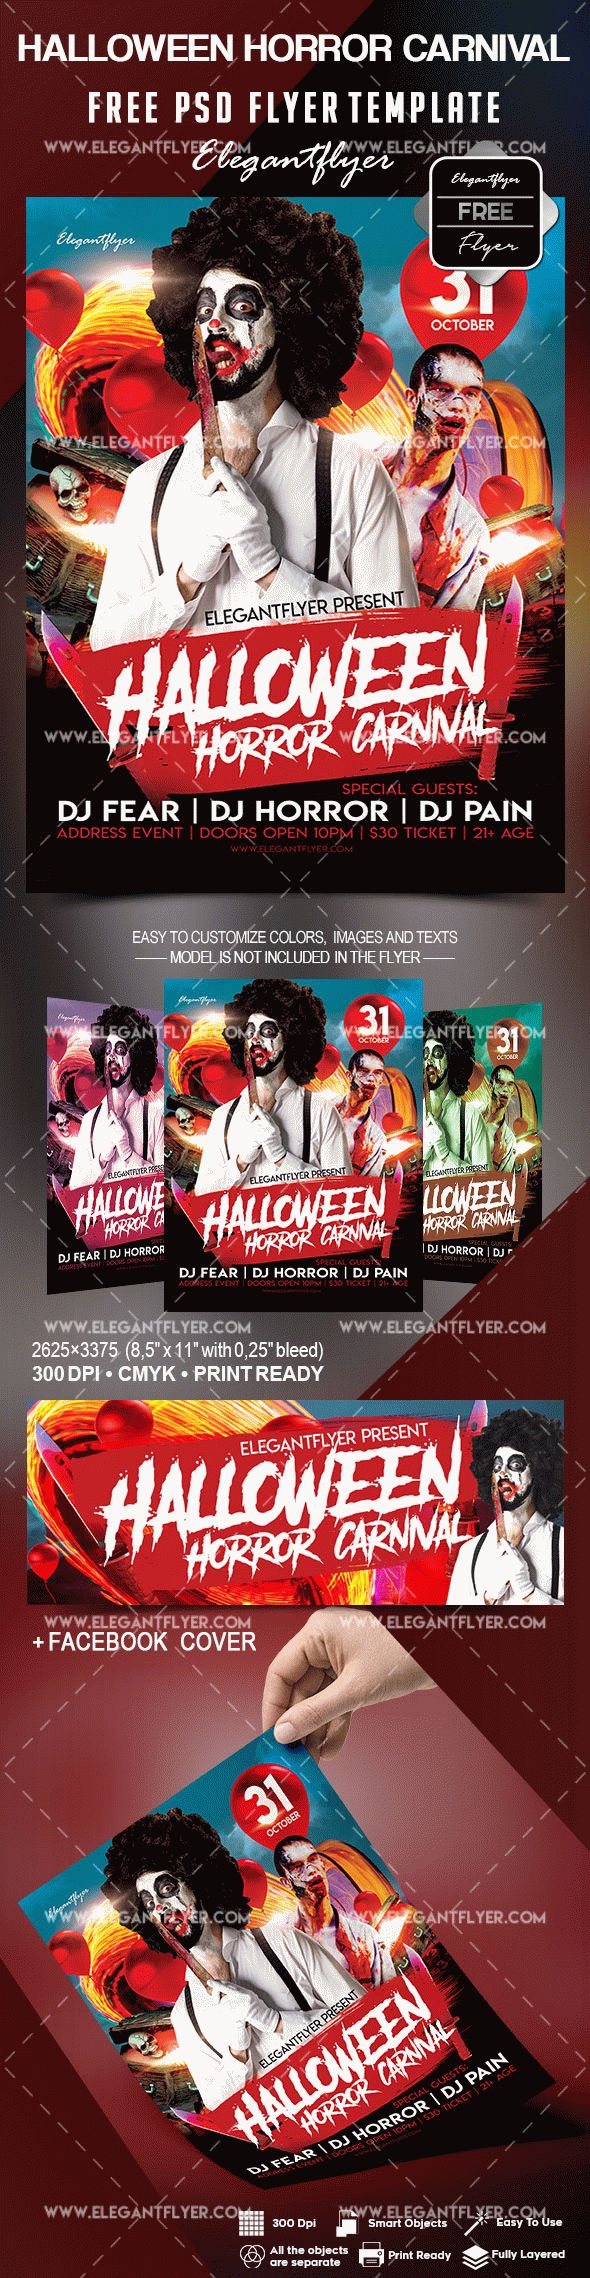 free halloween horror carnival flyer template by elegantflyer